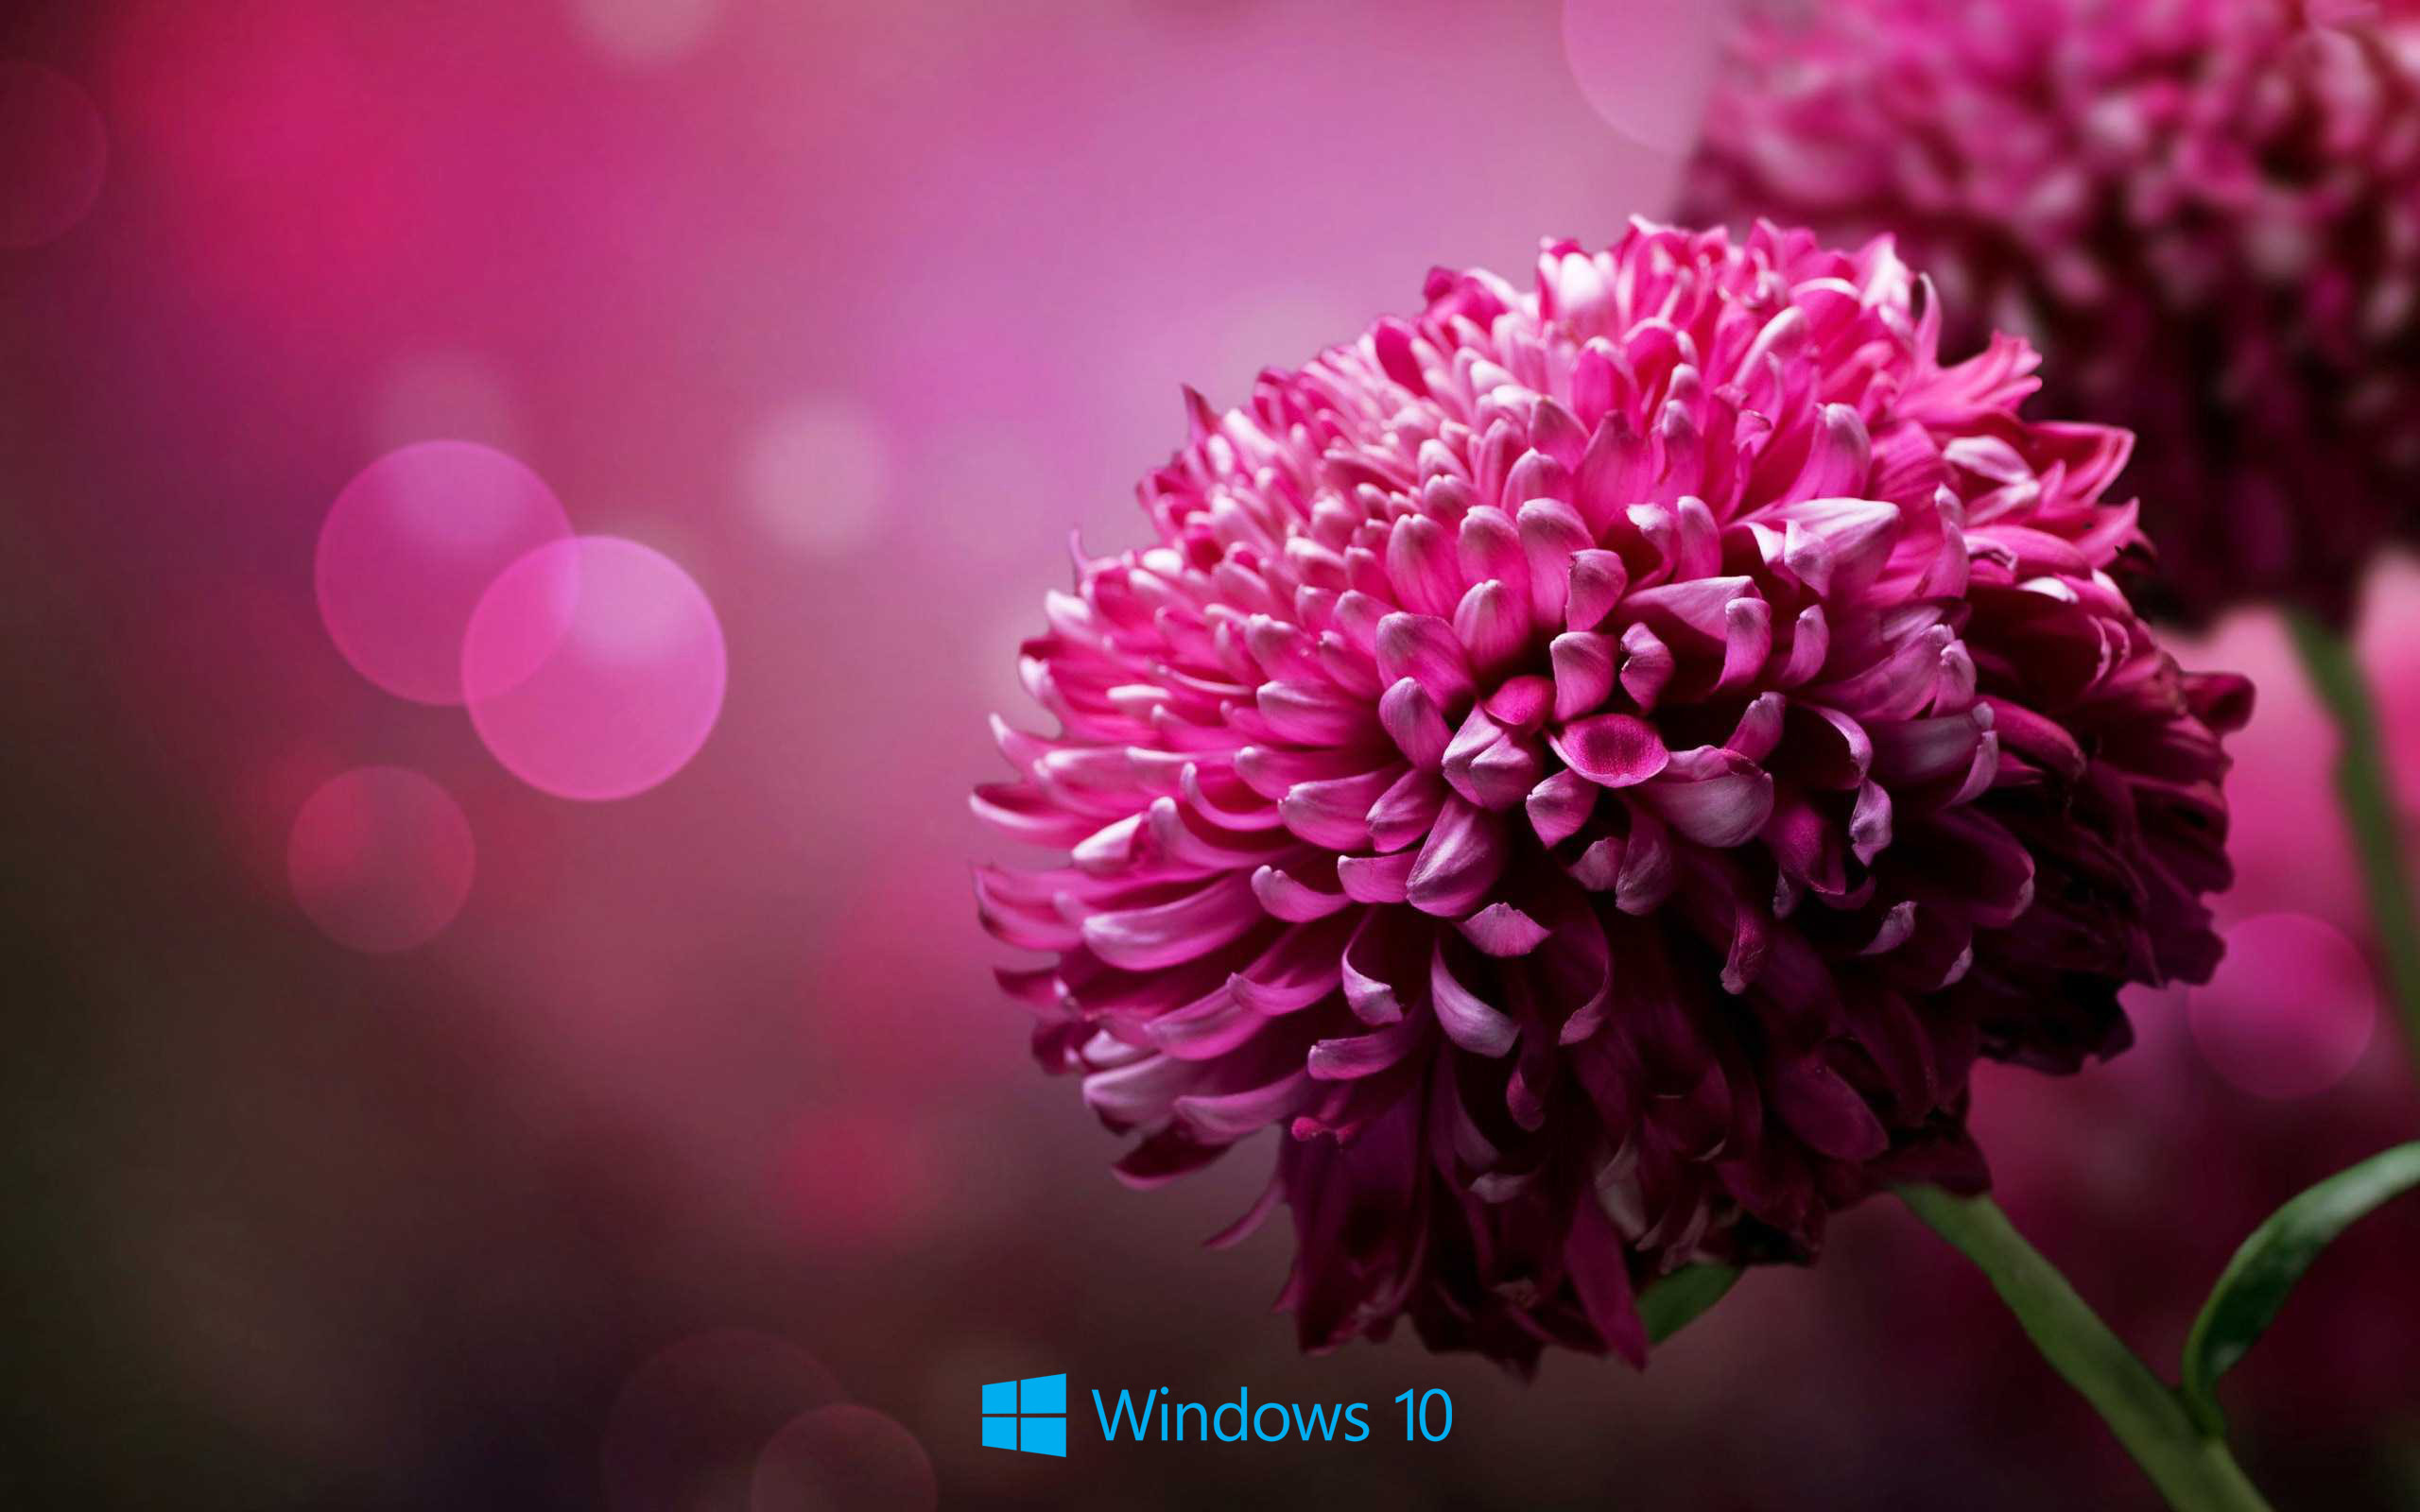 2560x1600 ... File attachment for Desktop Backgrounds for windows 10 - purple flower